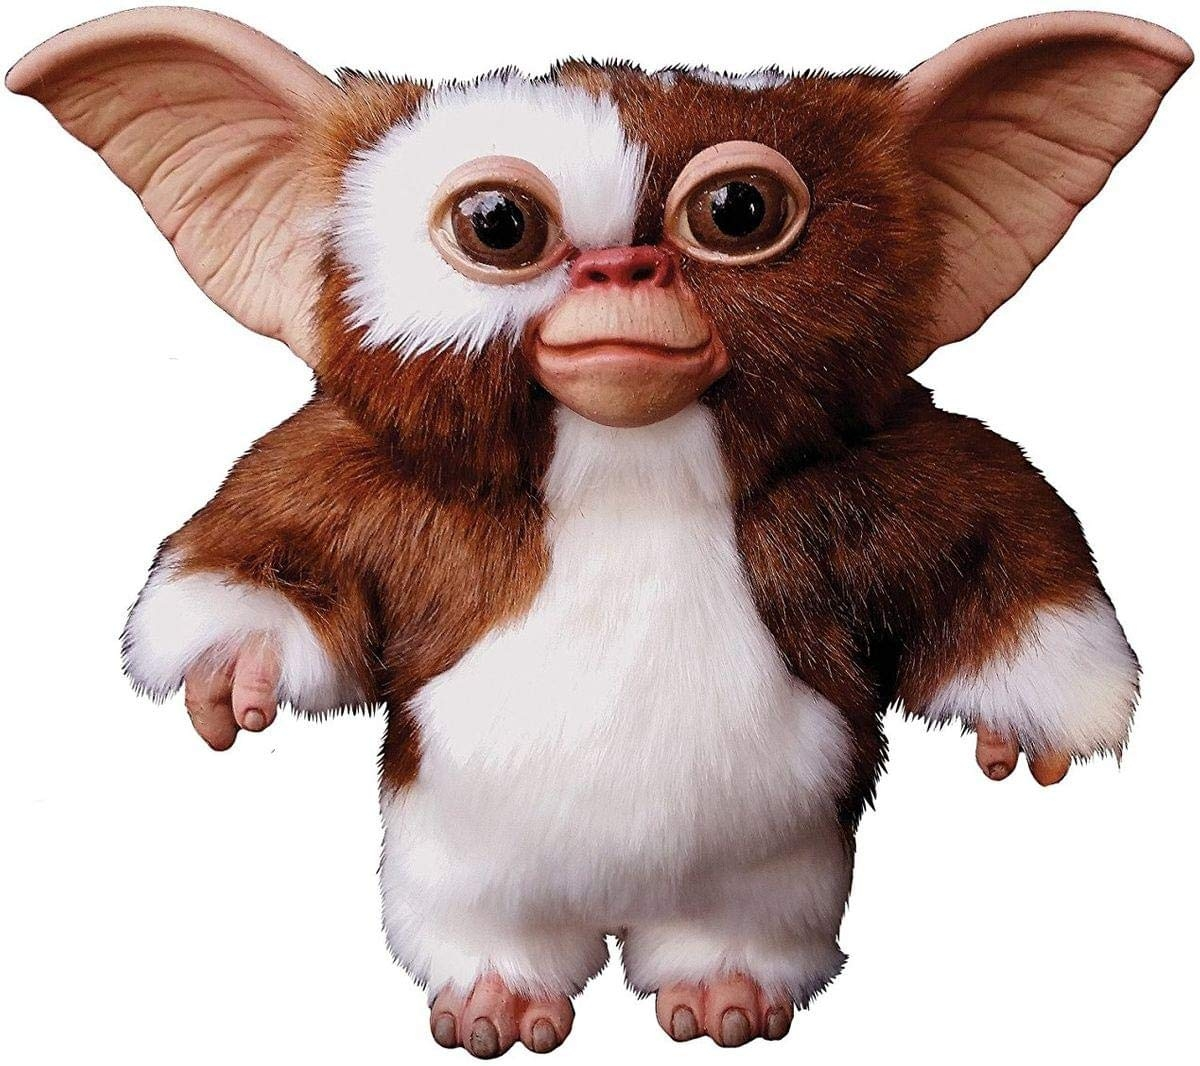 Gremlins Mogwai Gizmo Puppet by Trick or Treat Studios